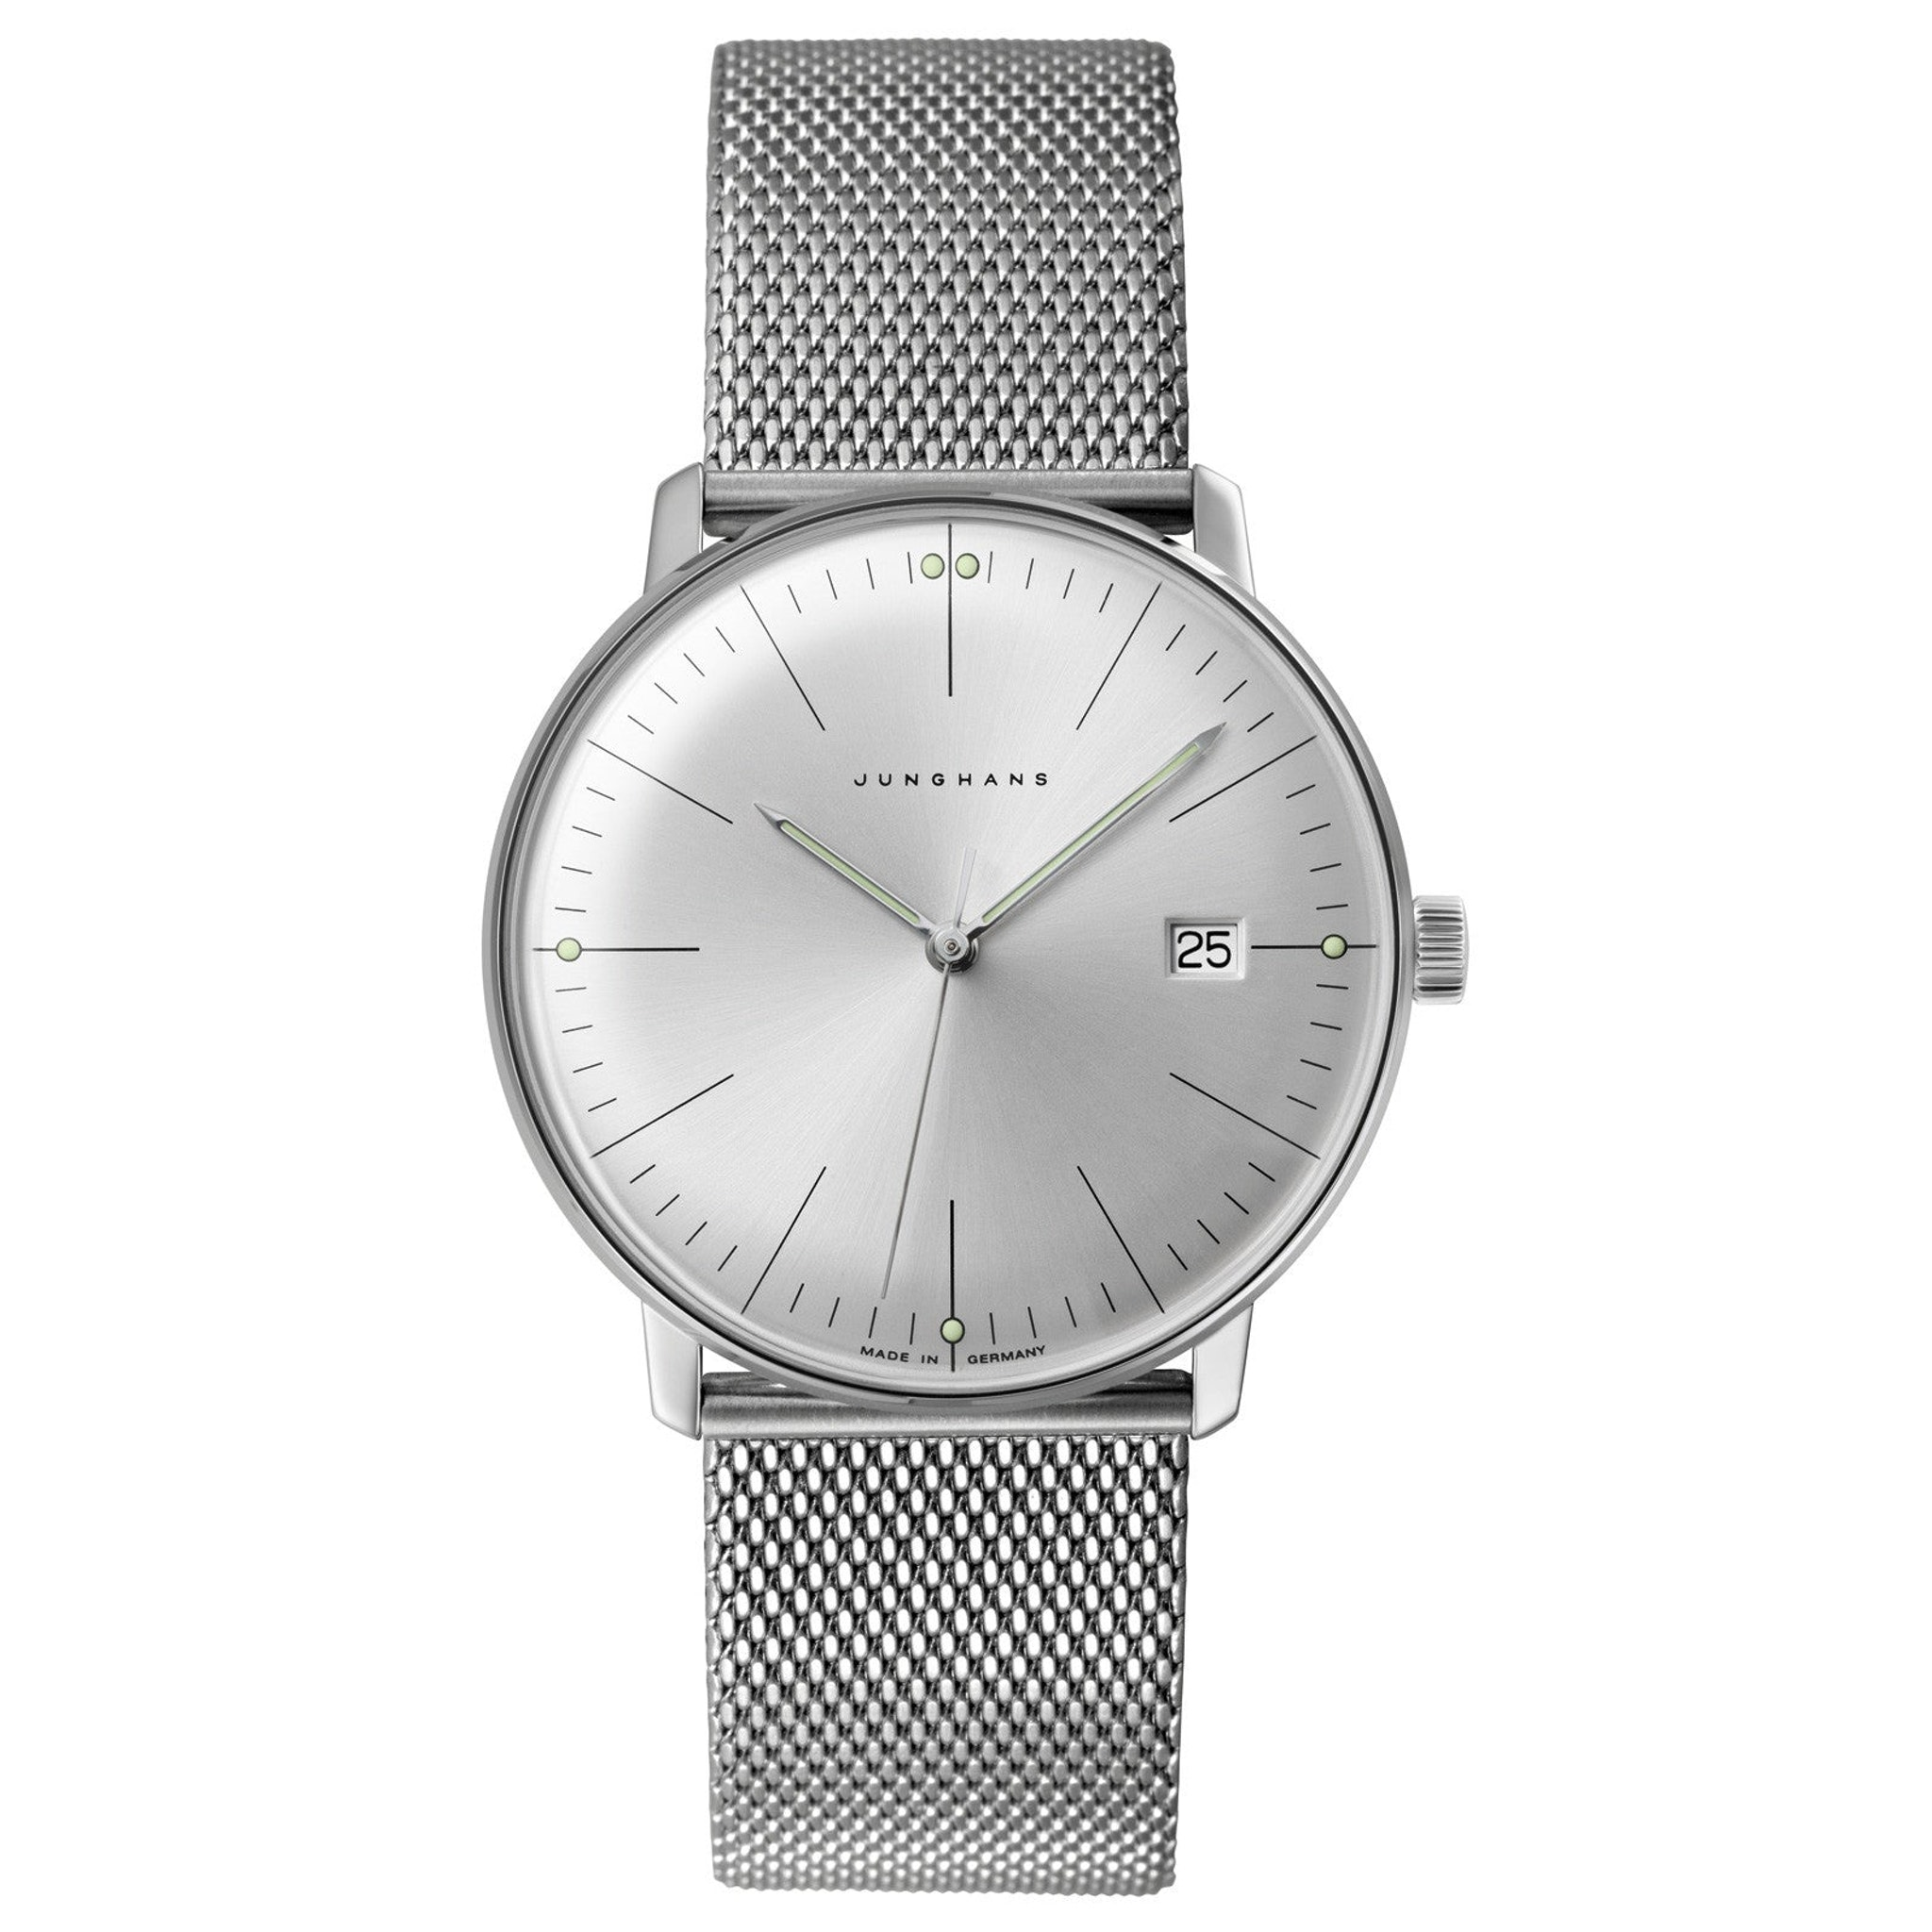 Max Bill 041/4463.44 Quartz watch by Junghans